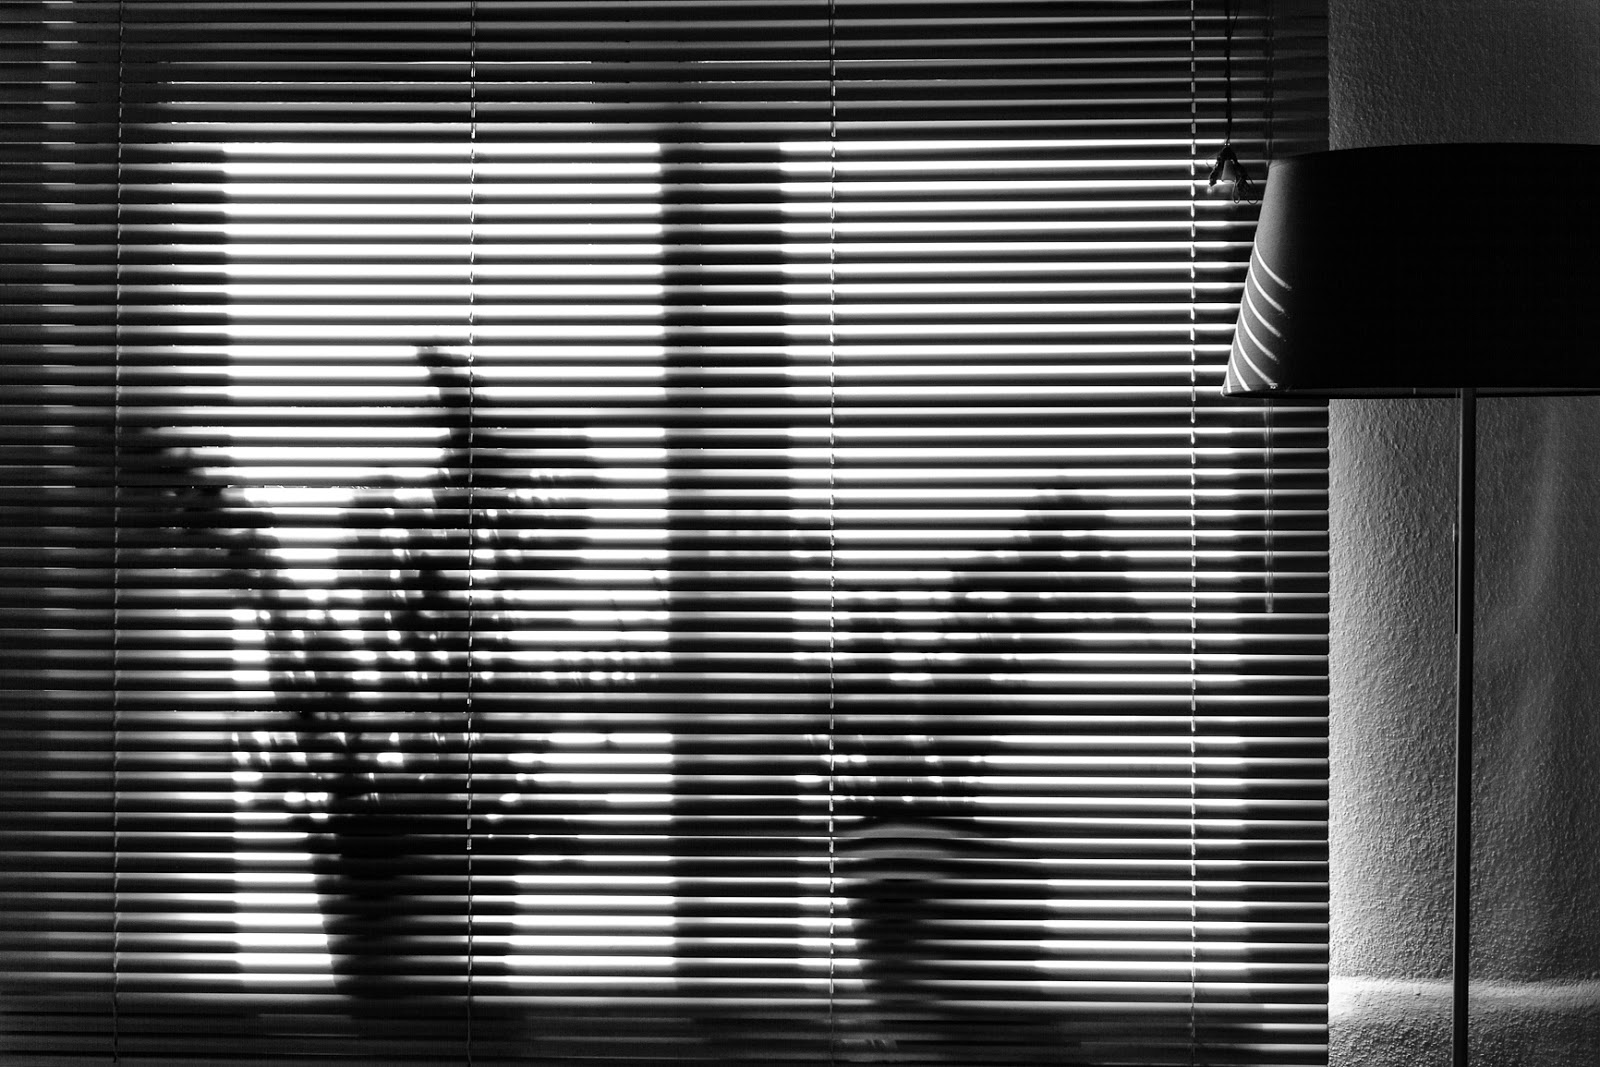 Matthew G. Beall Black and White vision driven photography  Light, Time and Shadows 2  2014